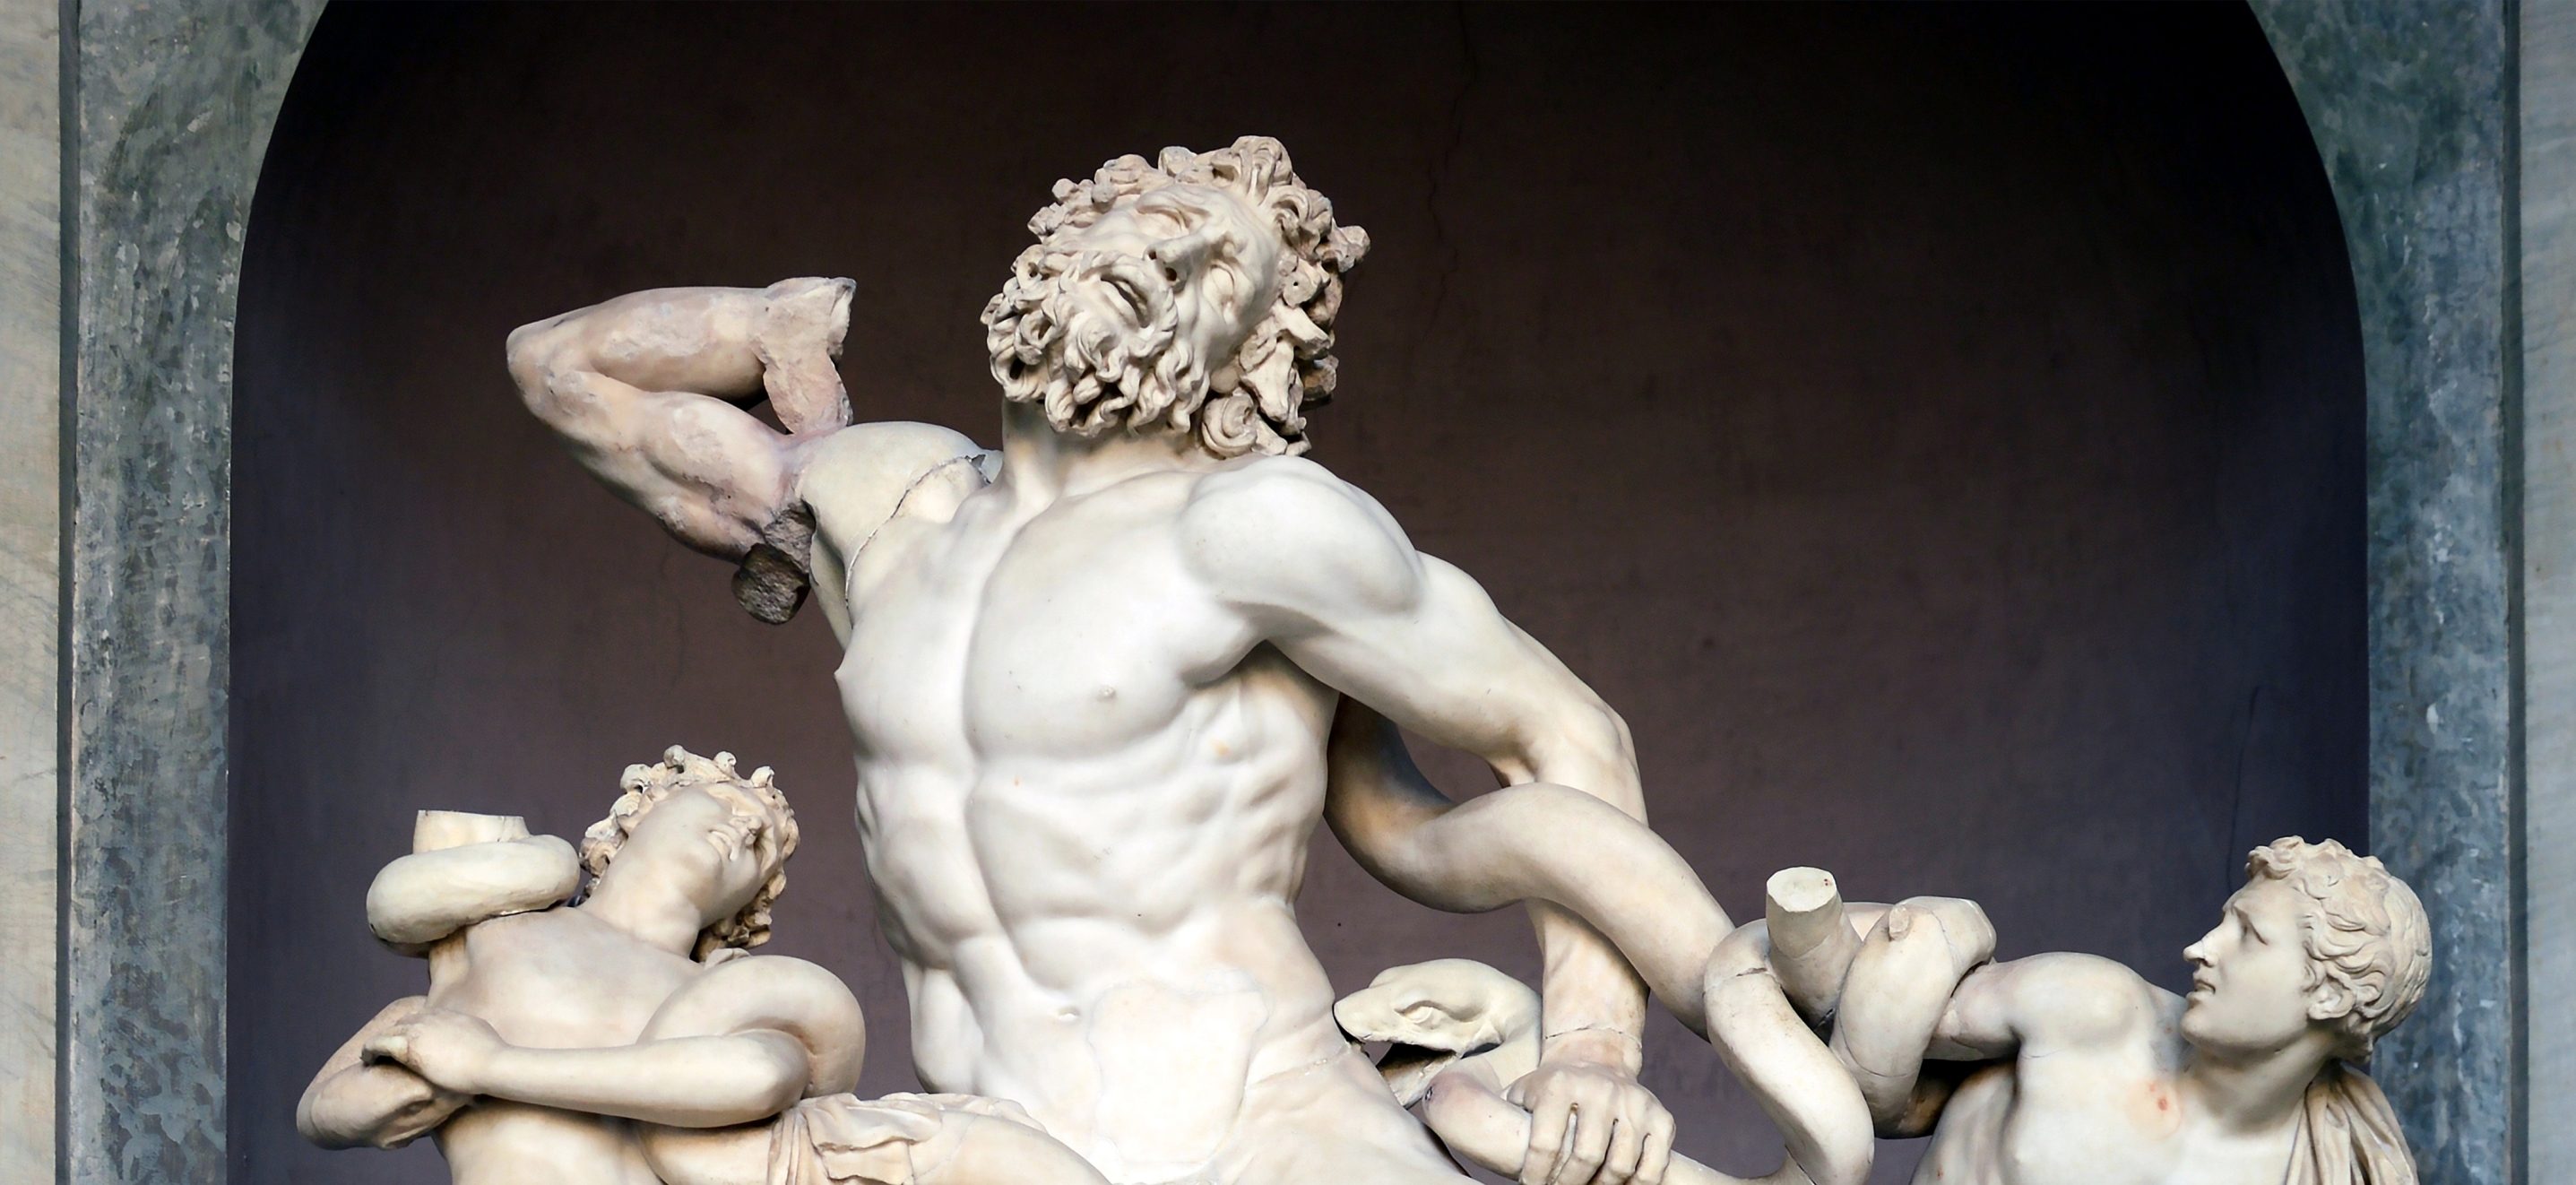 'Laocoön and His Sons': Suffering Unabated, Frozen and Forever